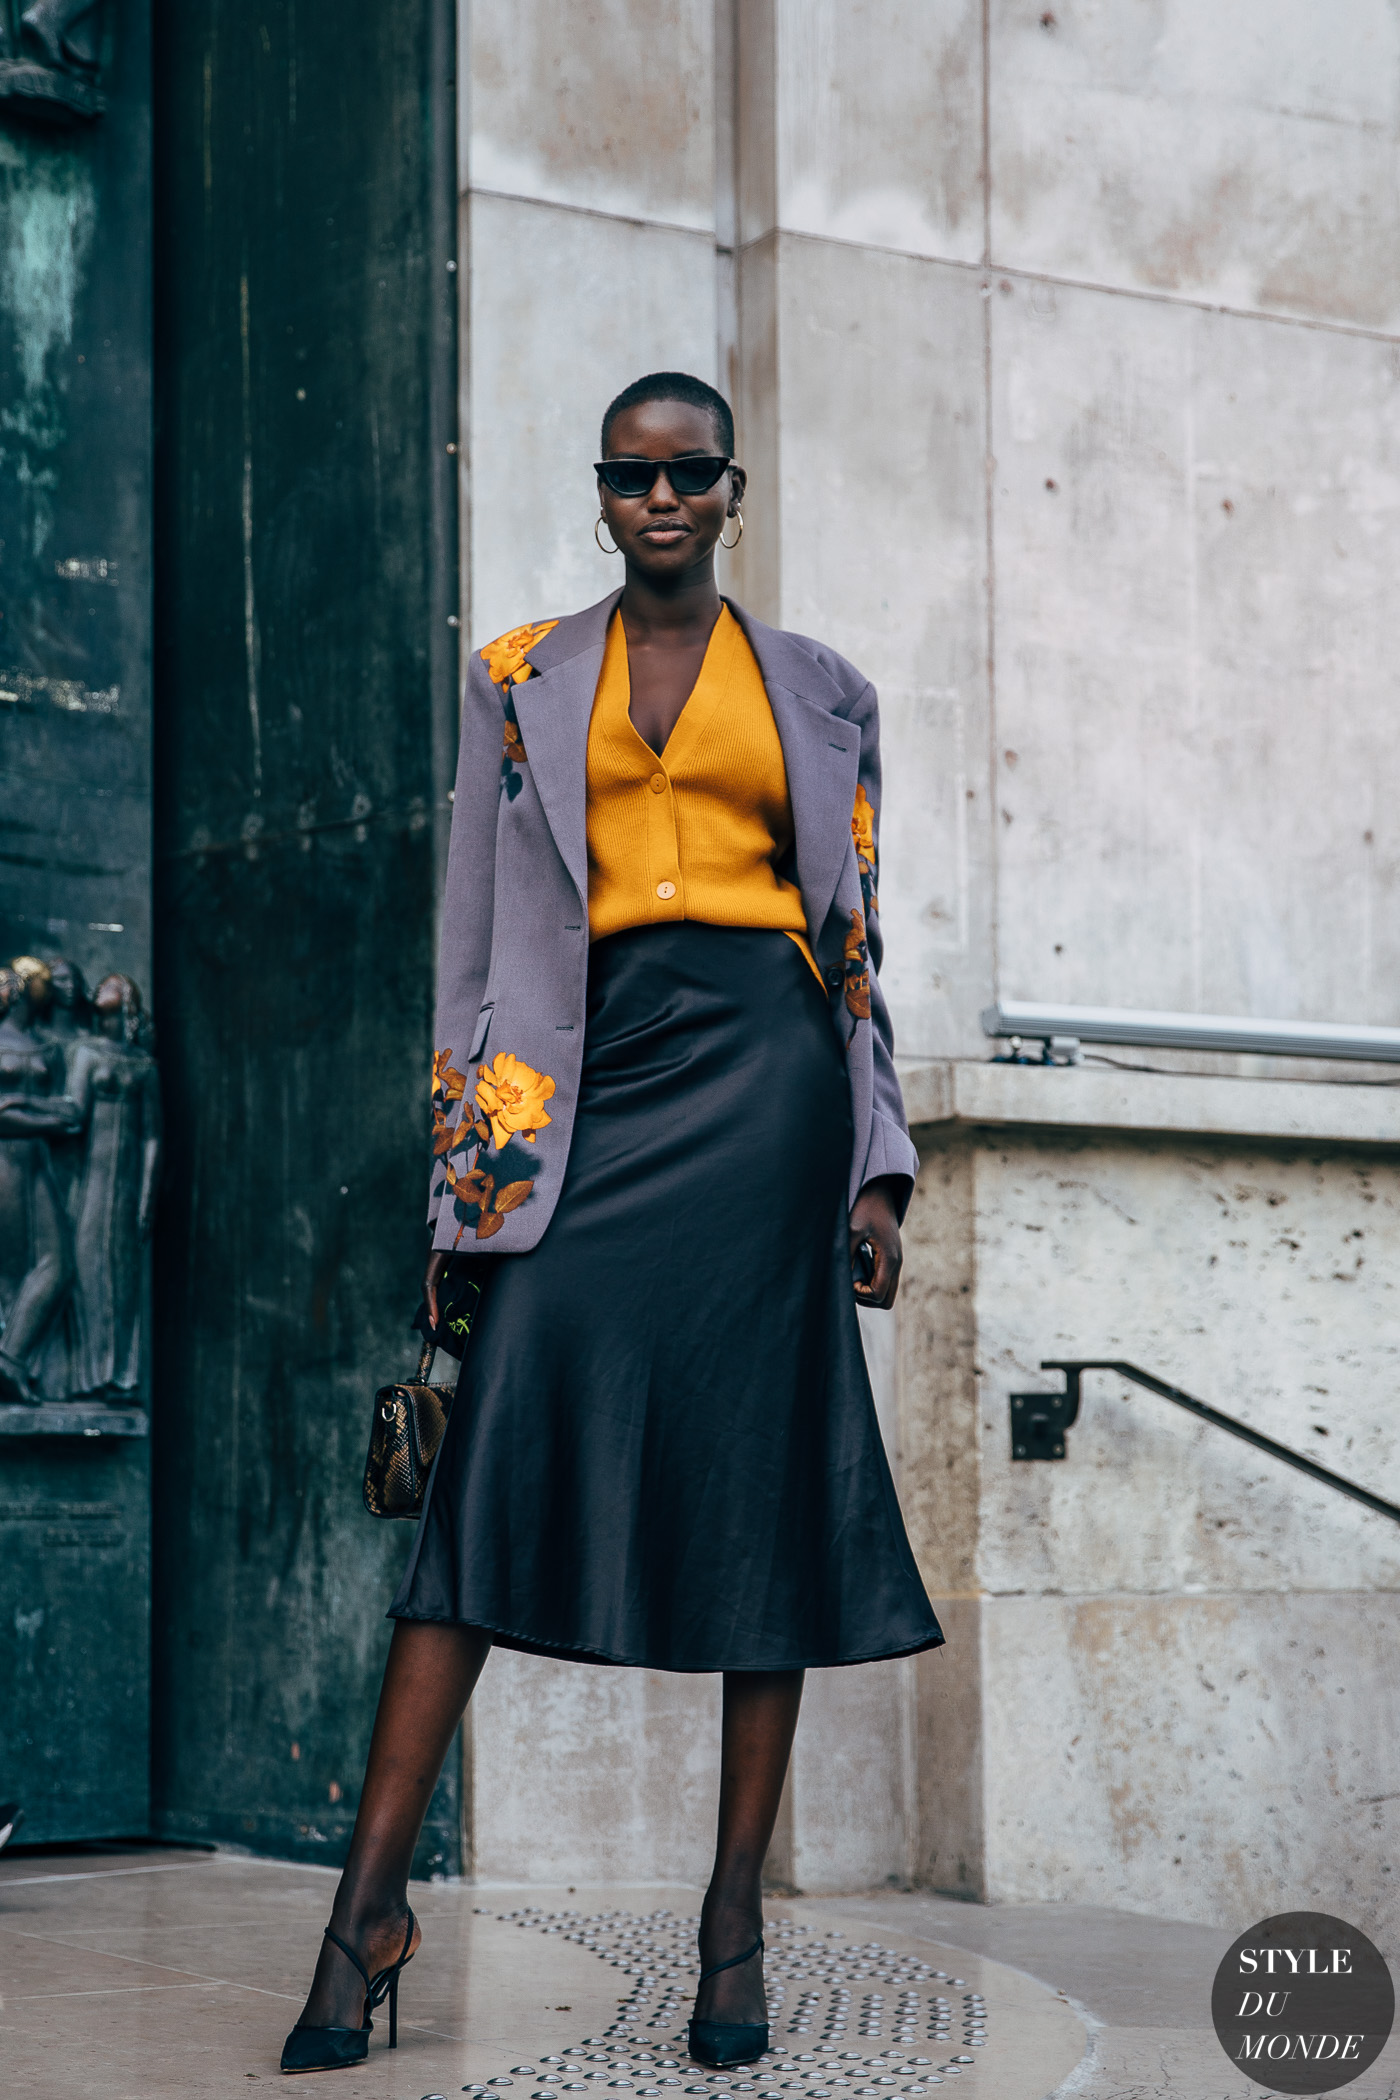 Paris SS 2020 Road Fashion: Adut Akech Bior